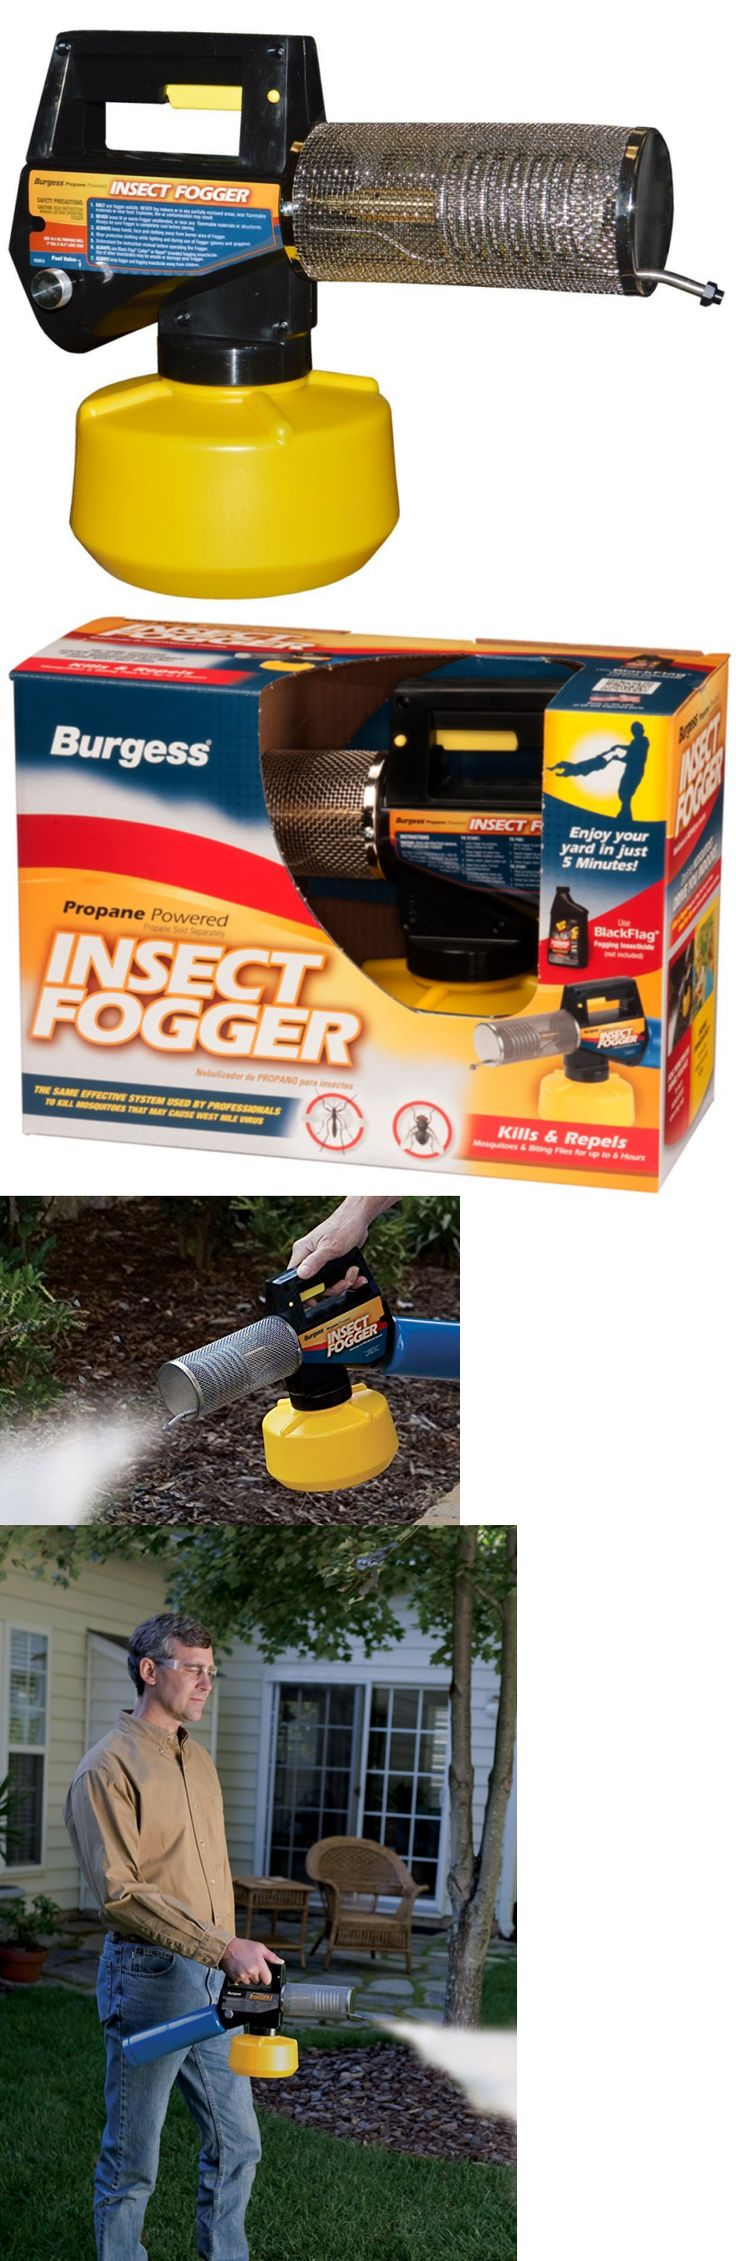 Foggers 181037: Burgess 1443 Propane Insect Fogger For Fast And Effective Mosquito Control In Yo -> BUY IT NOW ONLY: $73.56 on eBay!